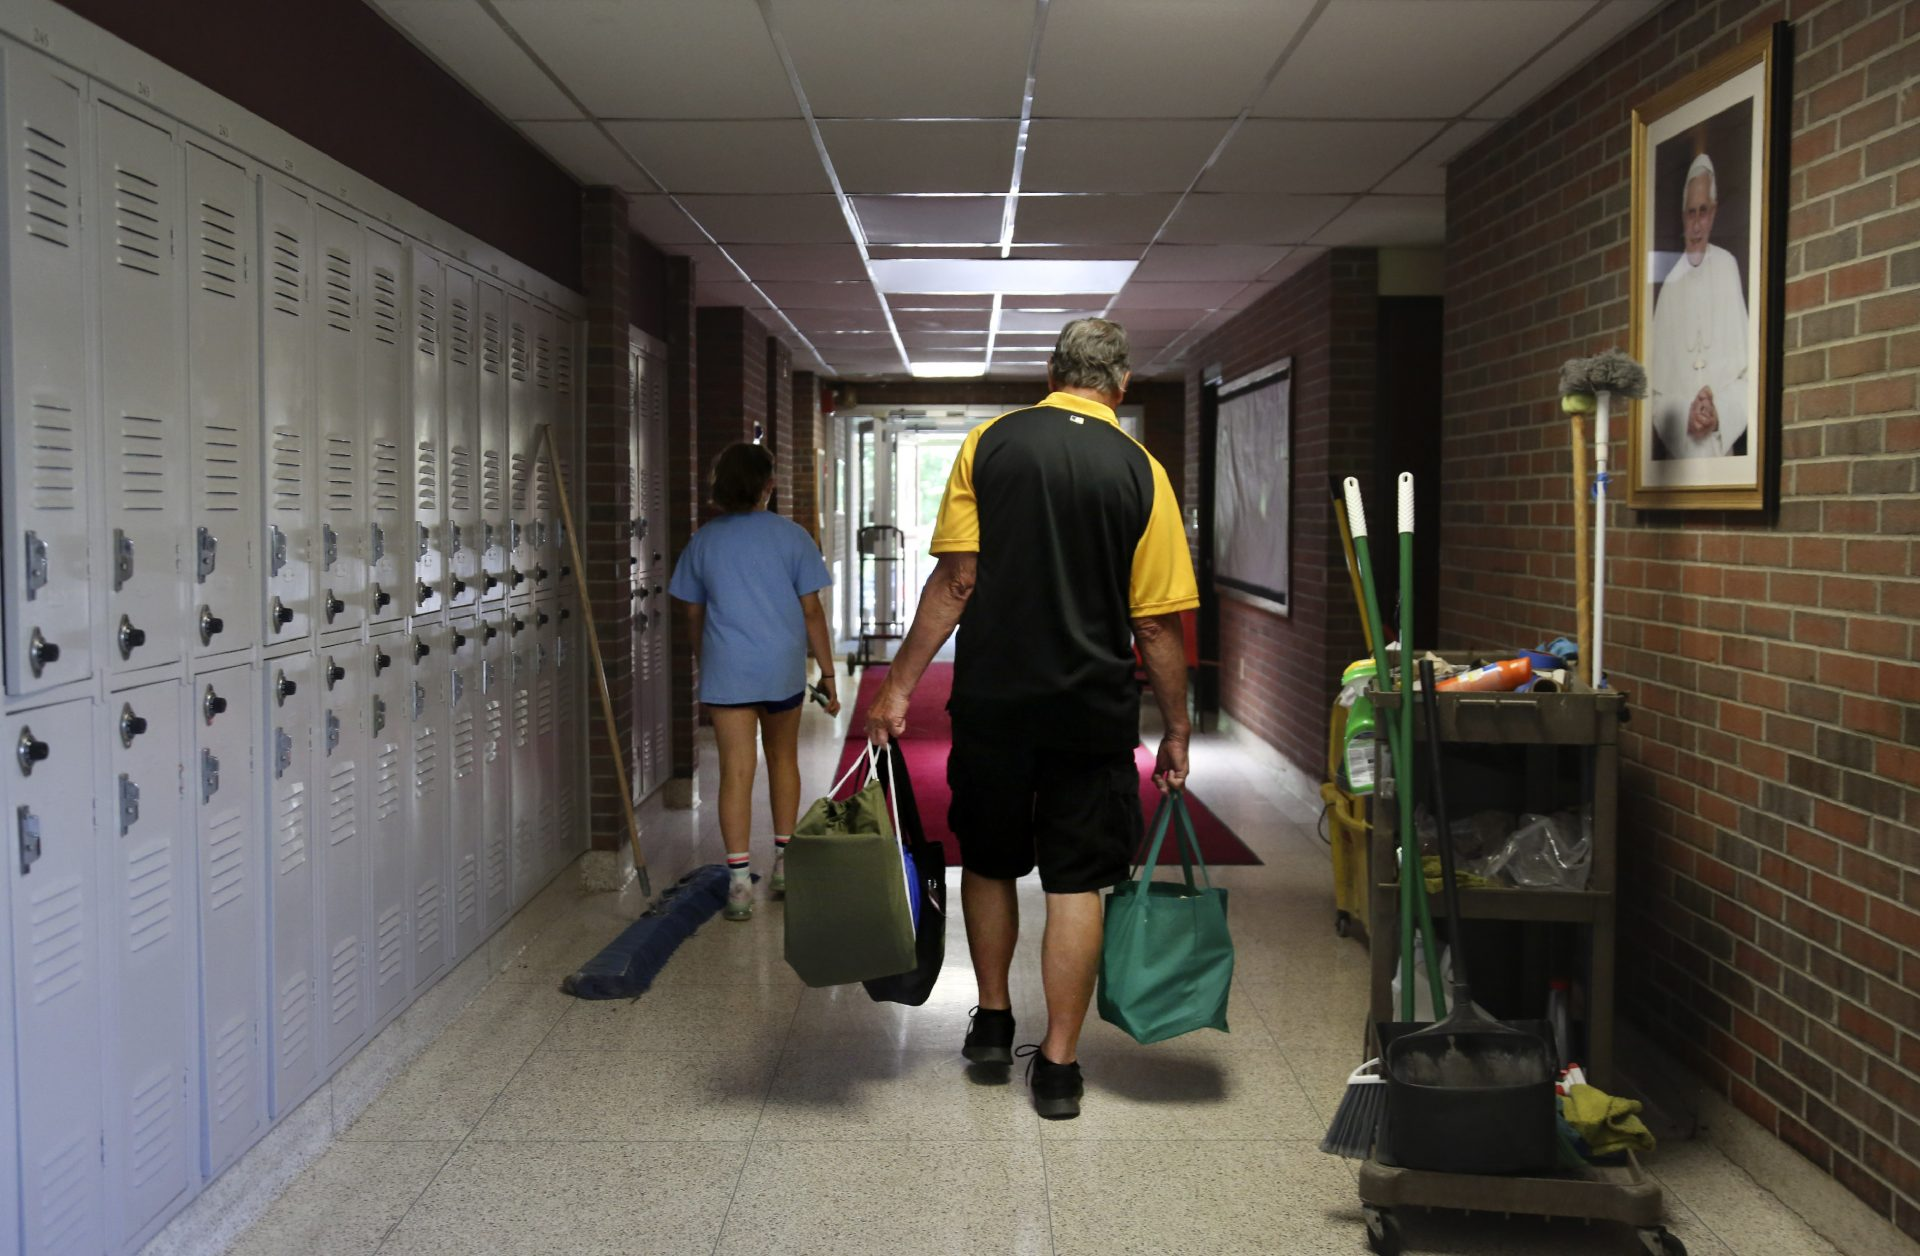 Cesa Pusateri, 12, and her grandfather, Timothy Waxenfelter, principal of Quigley Catholic High School, leave with his collection of speech and debate books after the recent closure of the school in Baden, Pa., Monday, June 8, 2020.